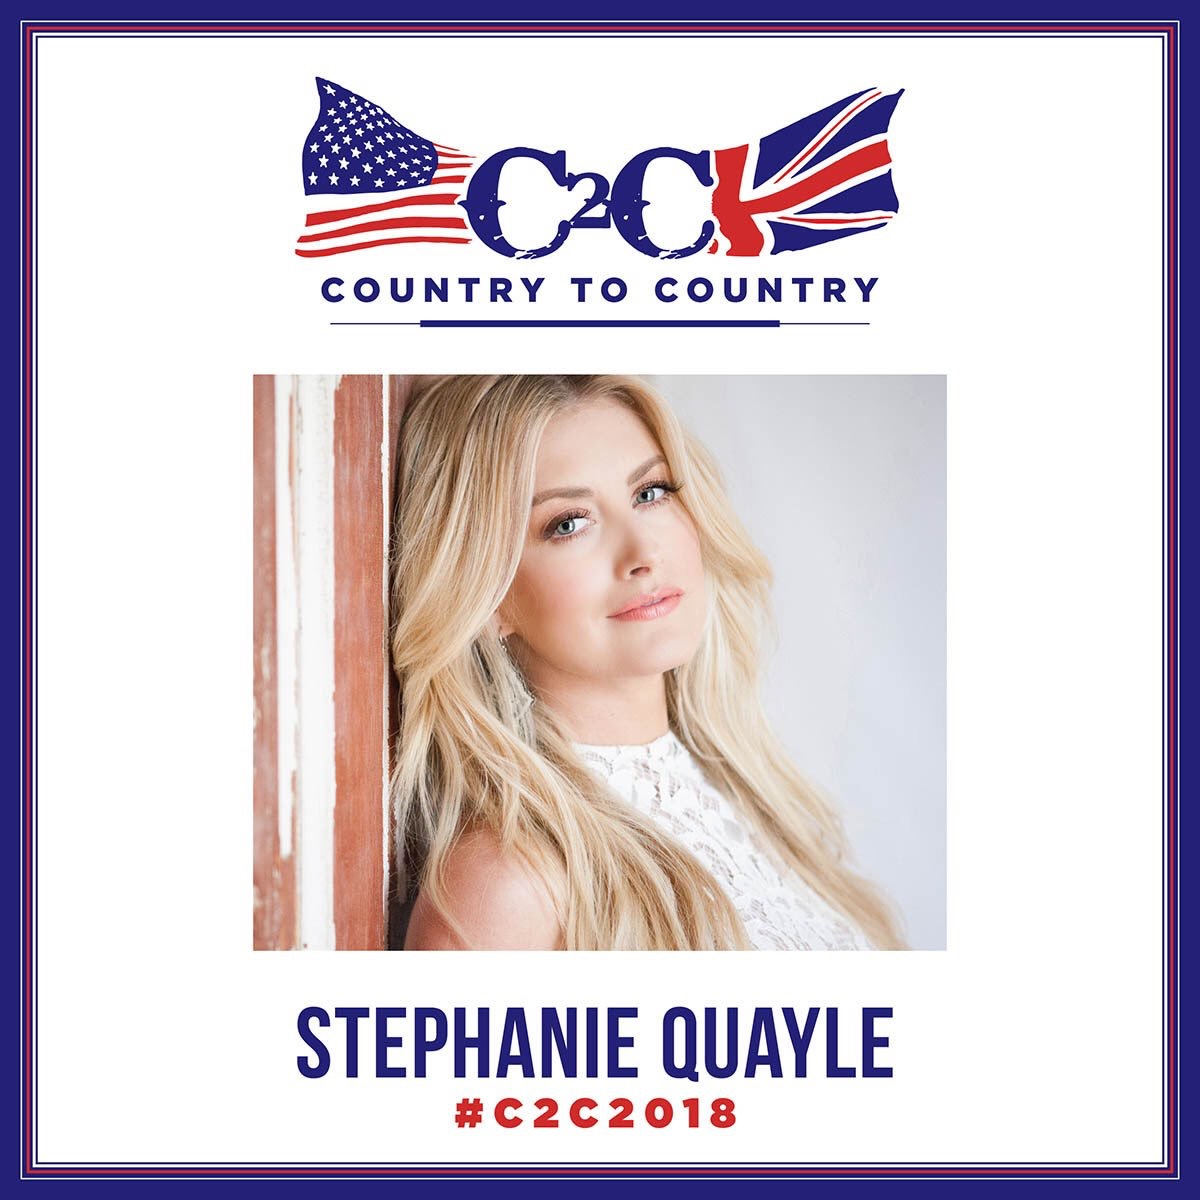 194c789567c72 Ever since Stephanie Quayle released her single Drinking With Dolly I  wanted to see her sing it live. It was one of those very special moments  when you hear ...